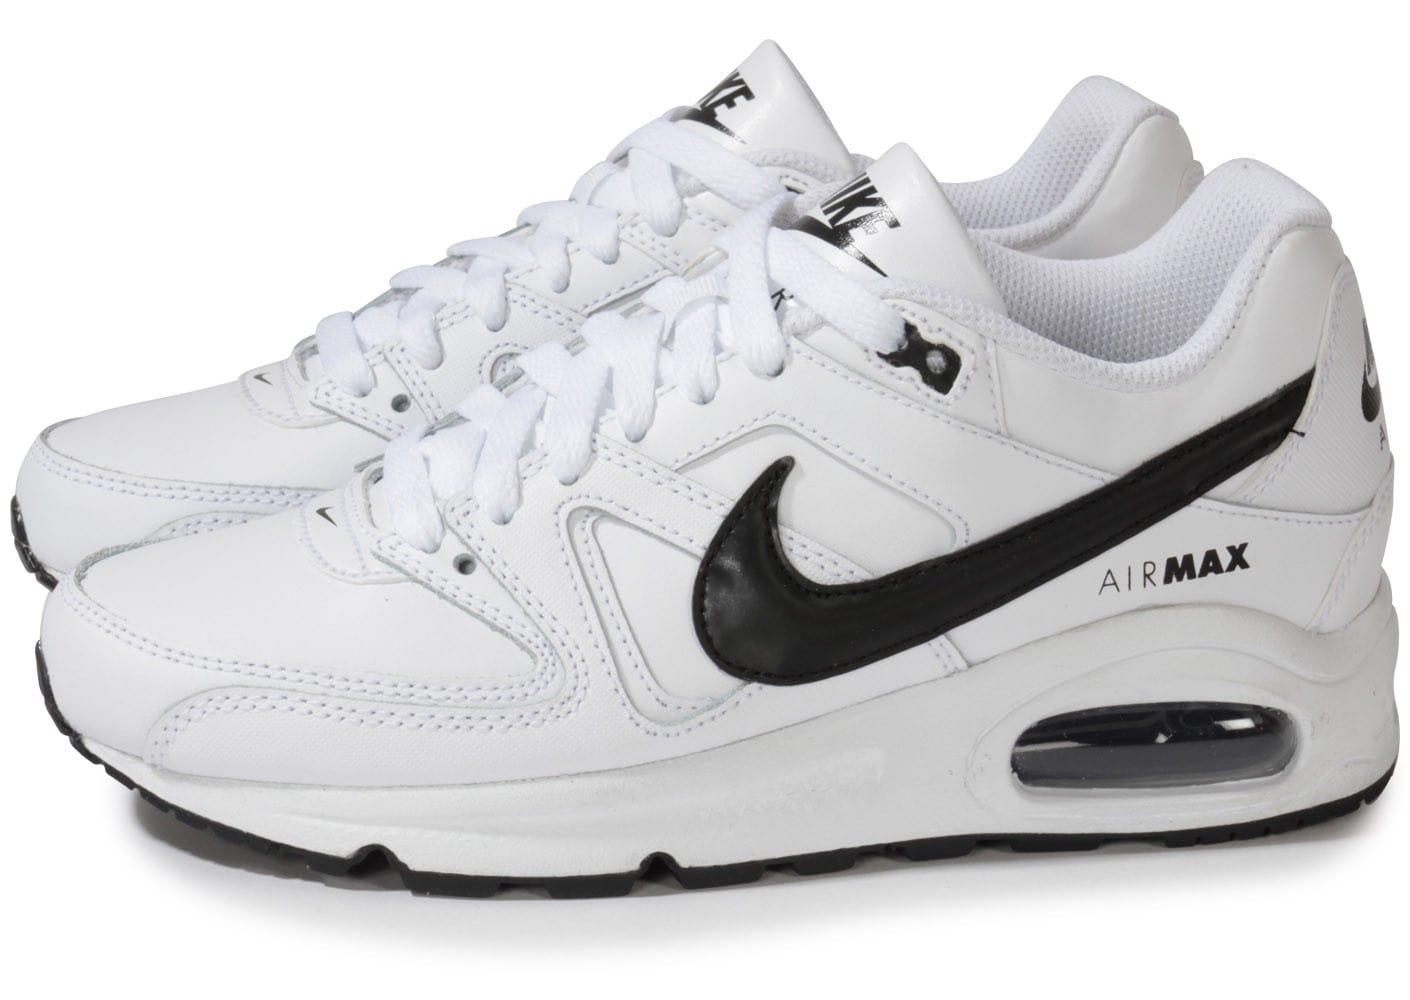 nike air max blanc et noir chaussures vans patinent. Black Bedroom Furniture Sets. Home Design Ideas